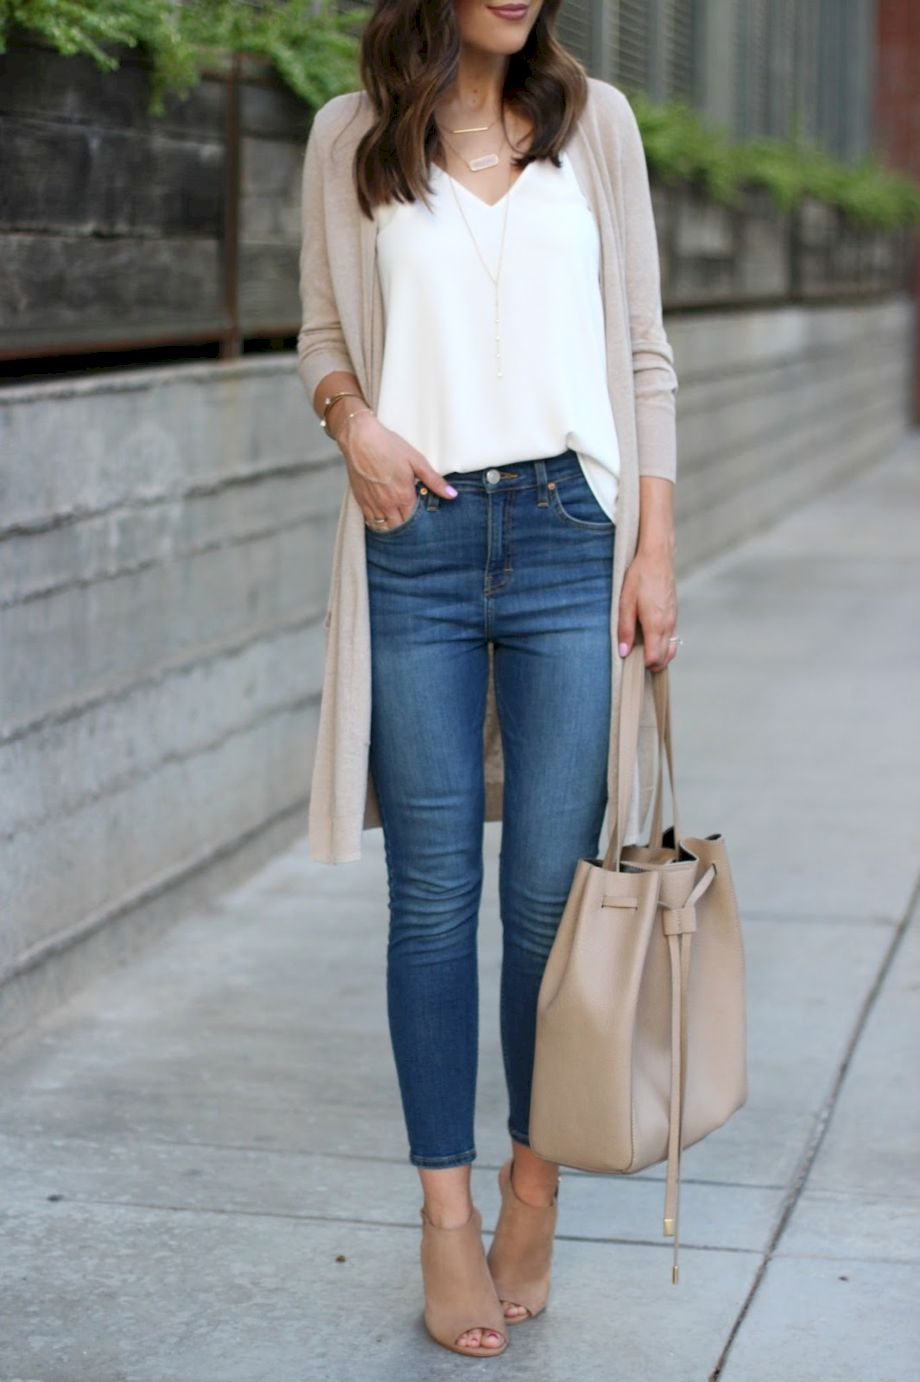 Cardigan outfit 14